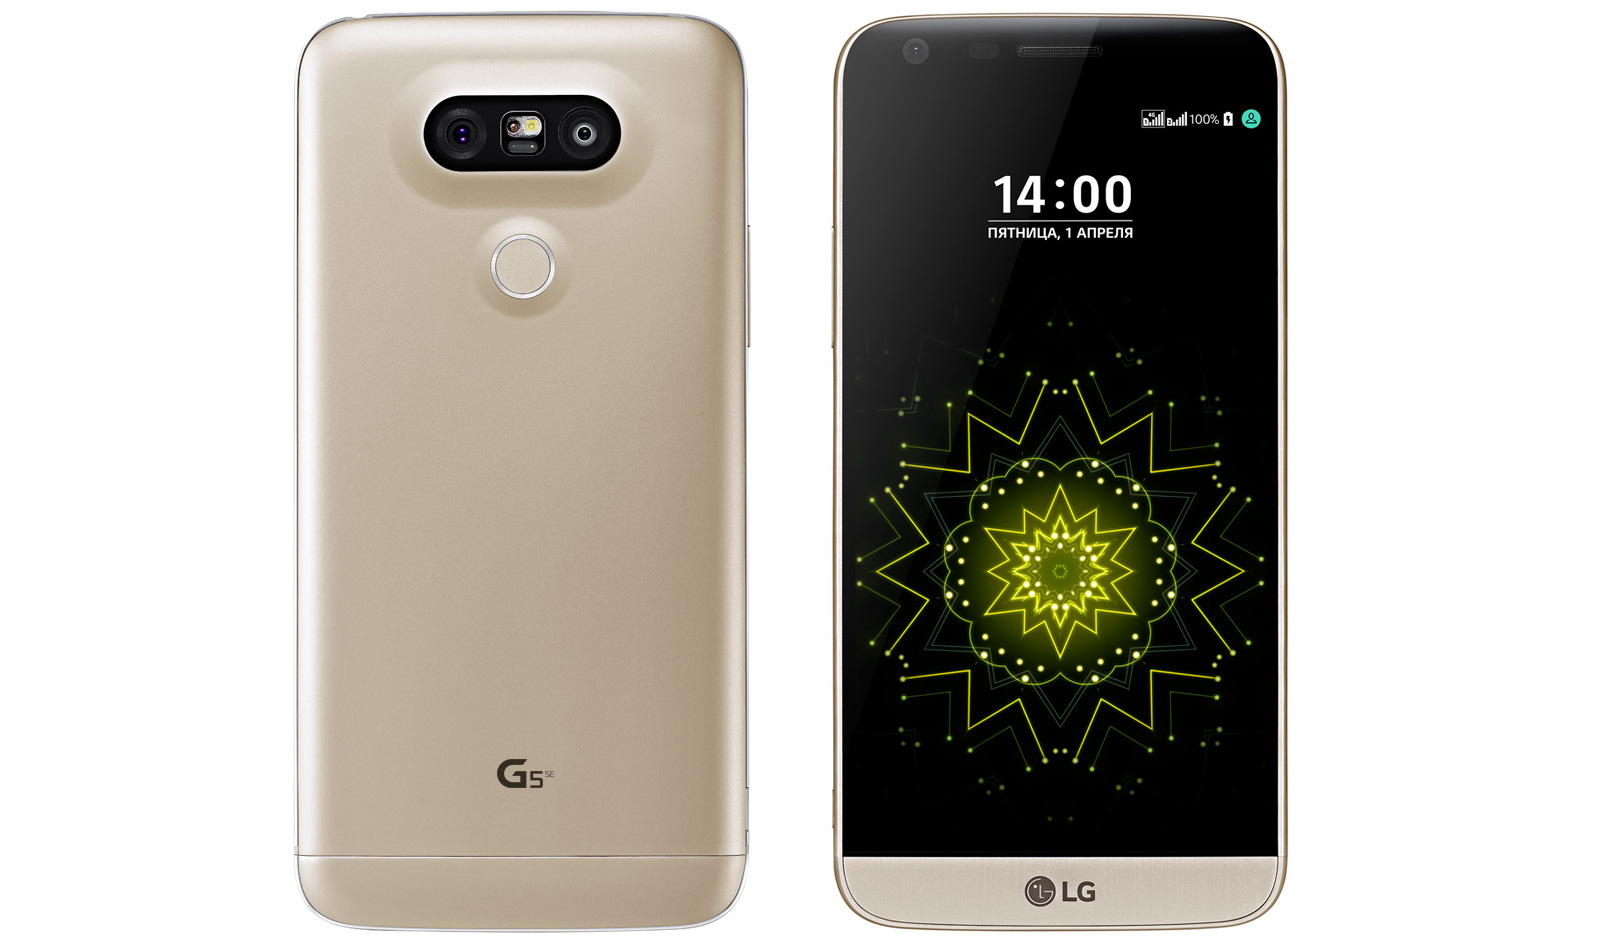 LG Phone Specification - LG G5 SE with the Dual Primary Camera, Snapdragon 652 Processor and More